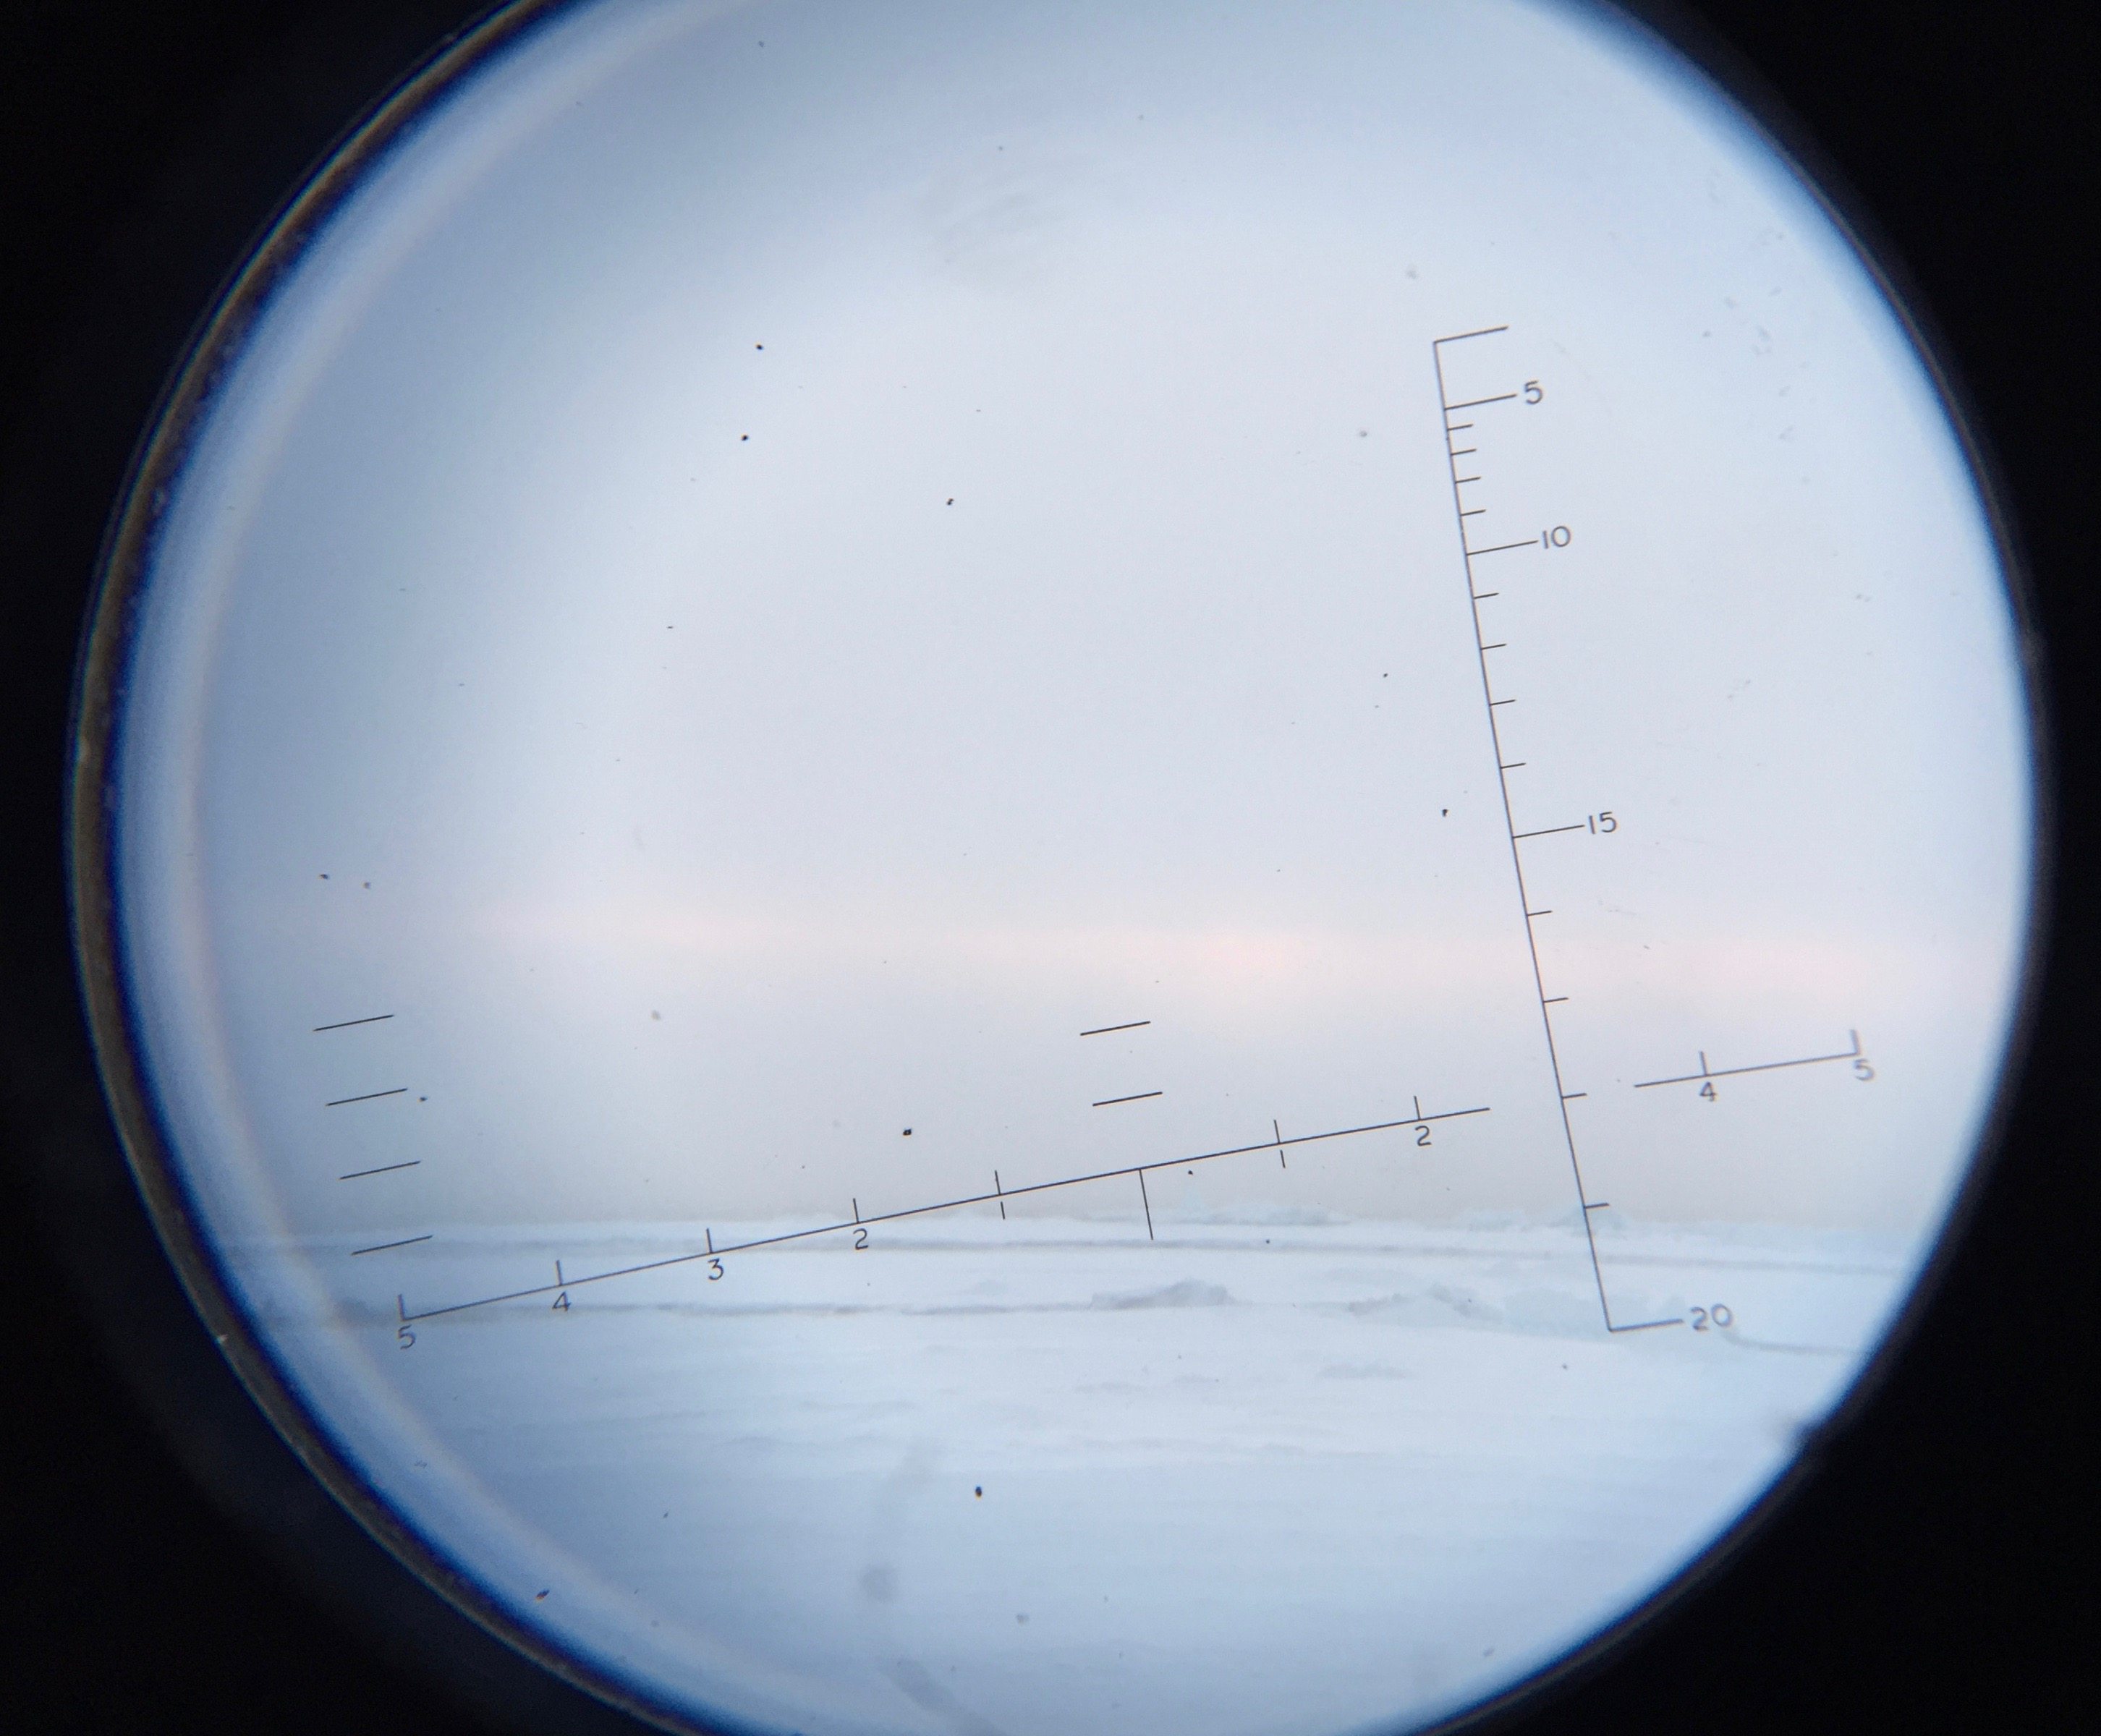 view through the binoculars